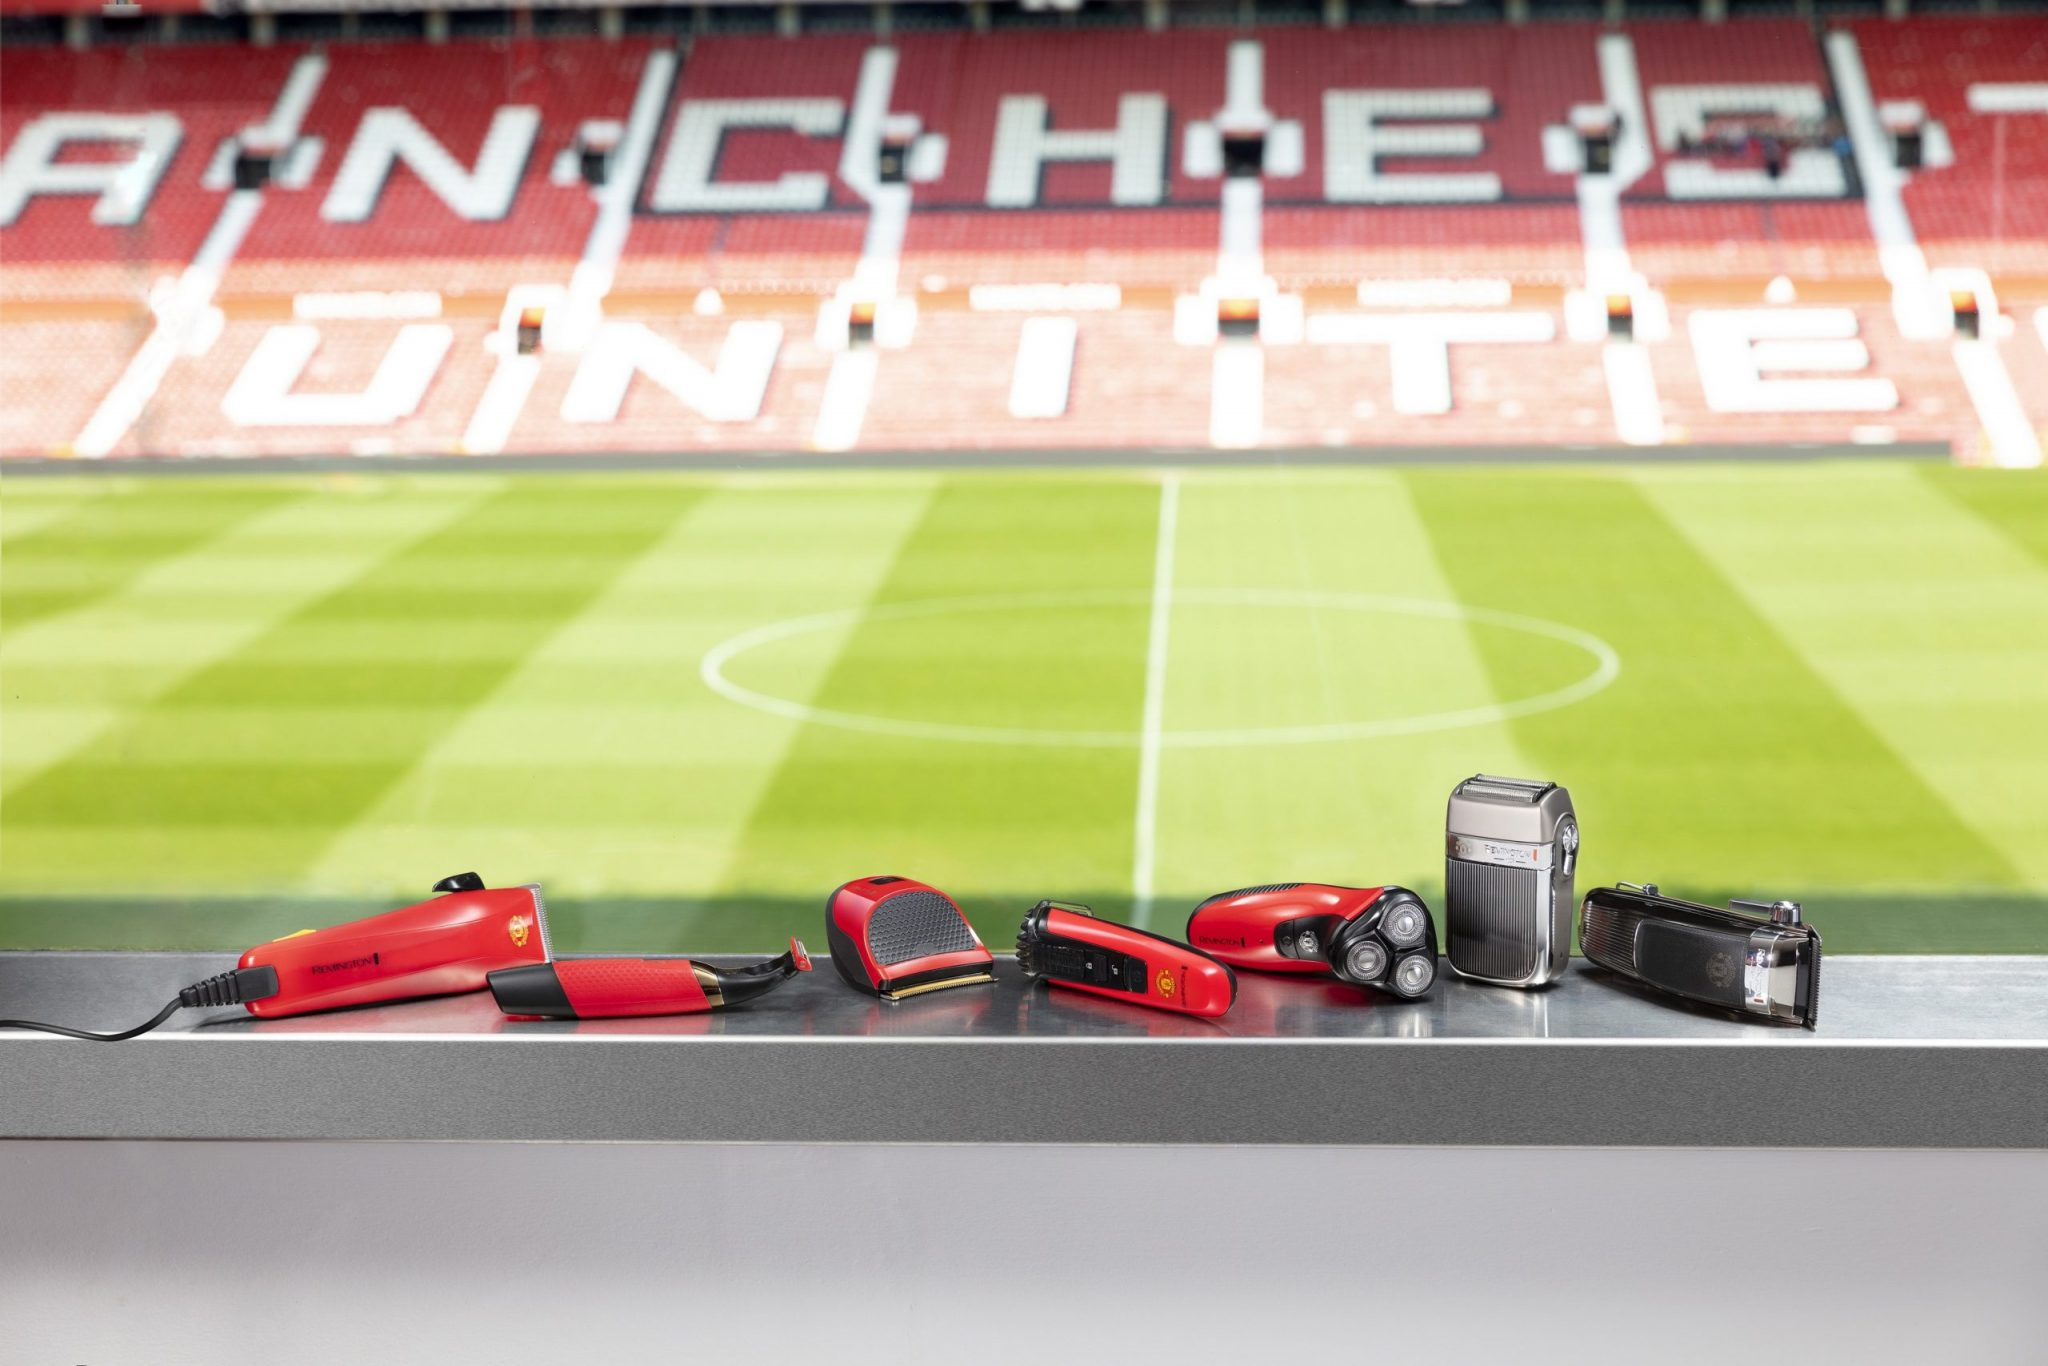 Remington's Manchester United Collection. Father's Day styling gifts.